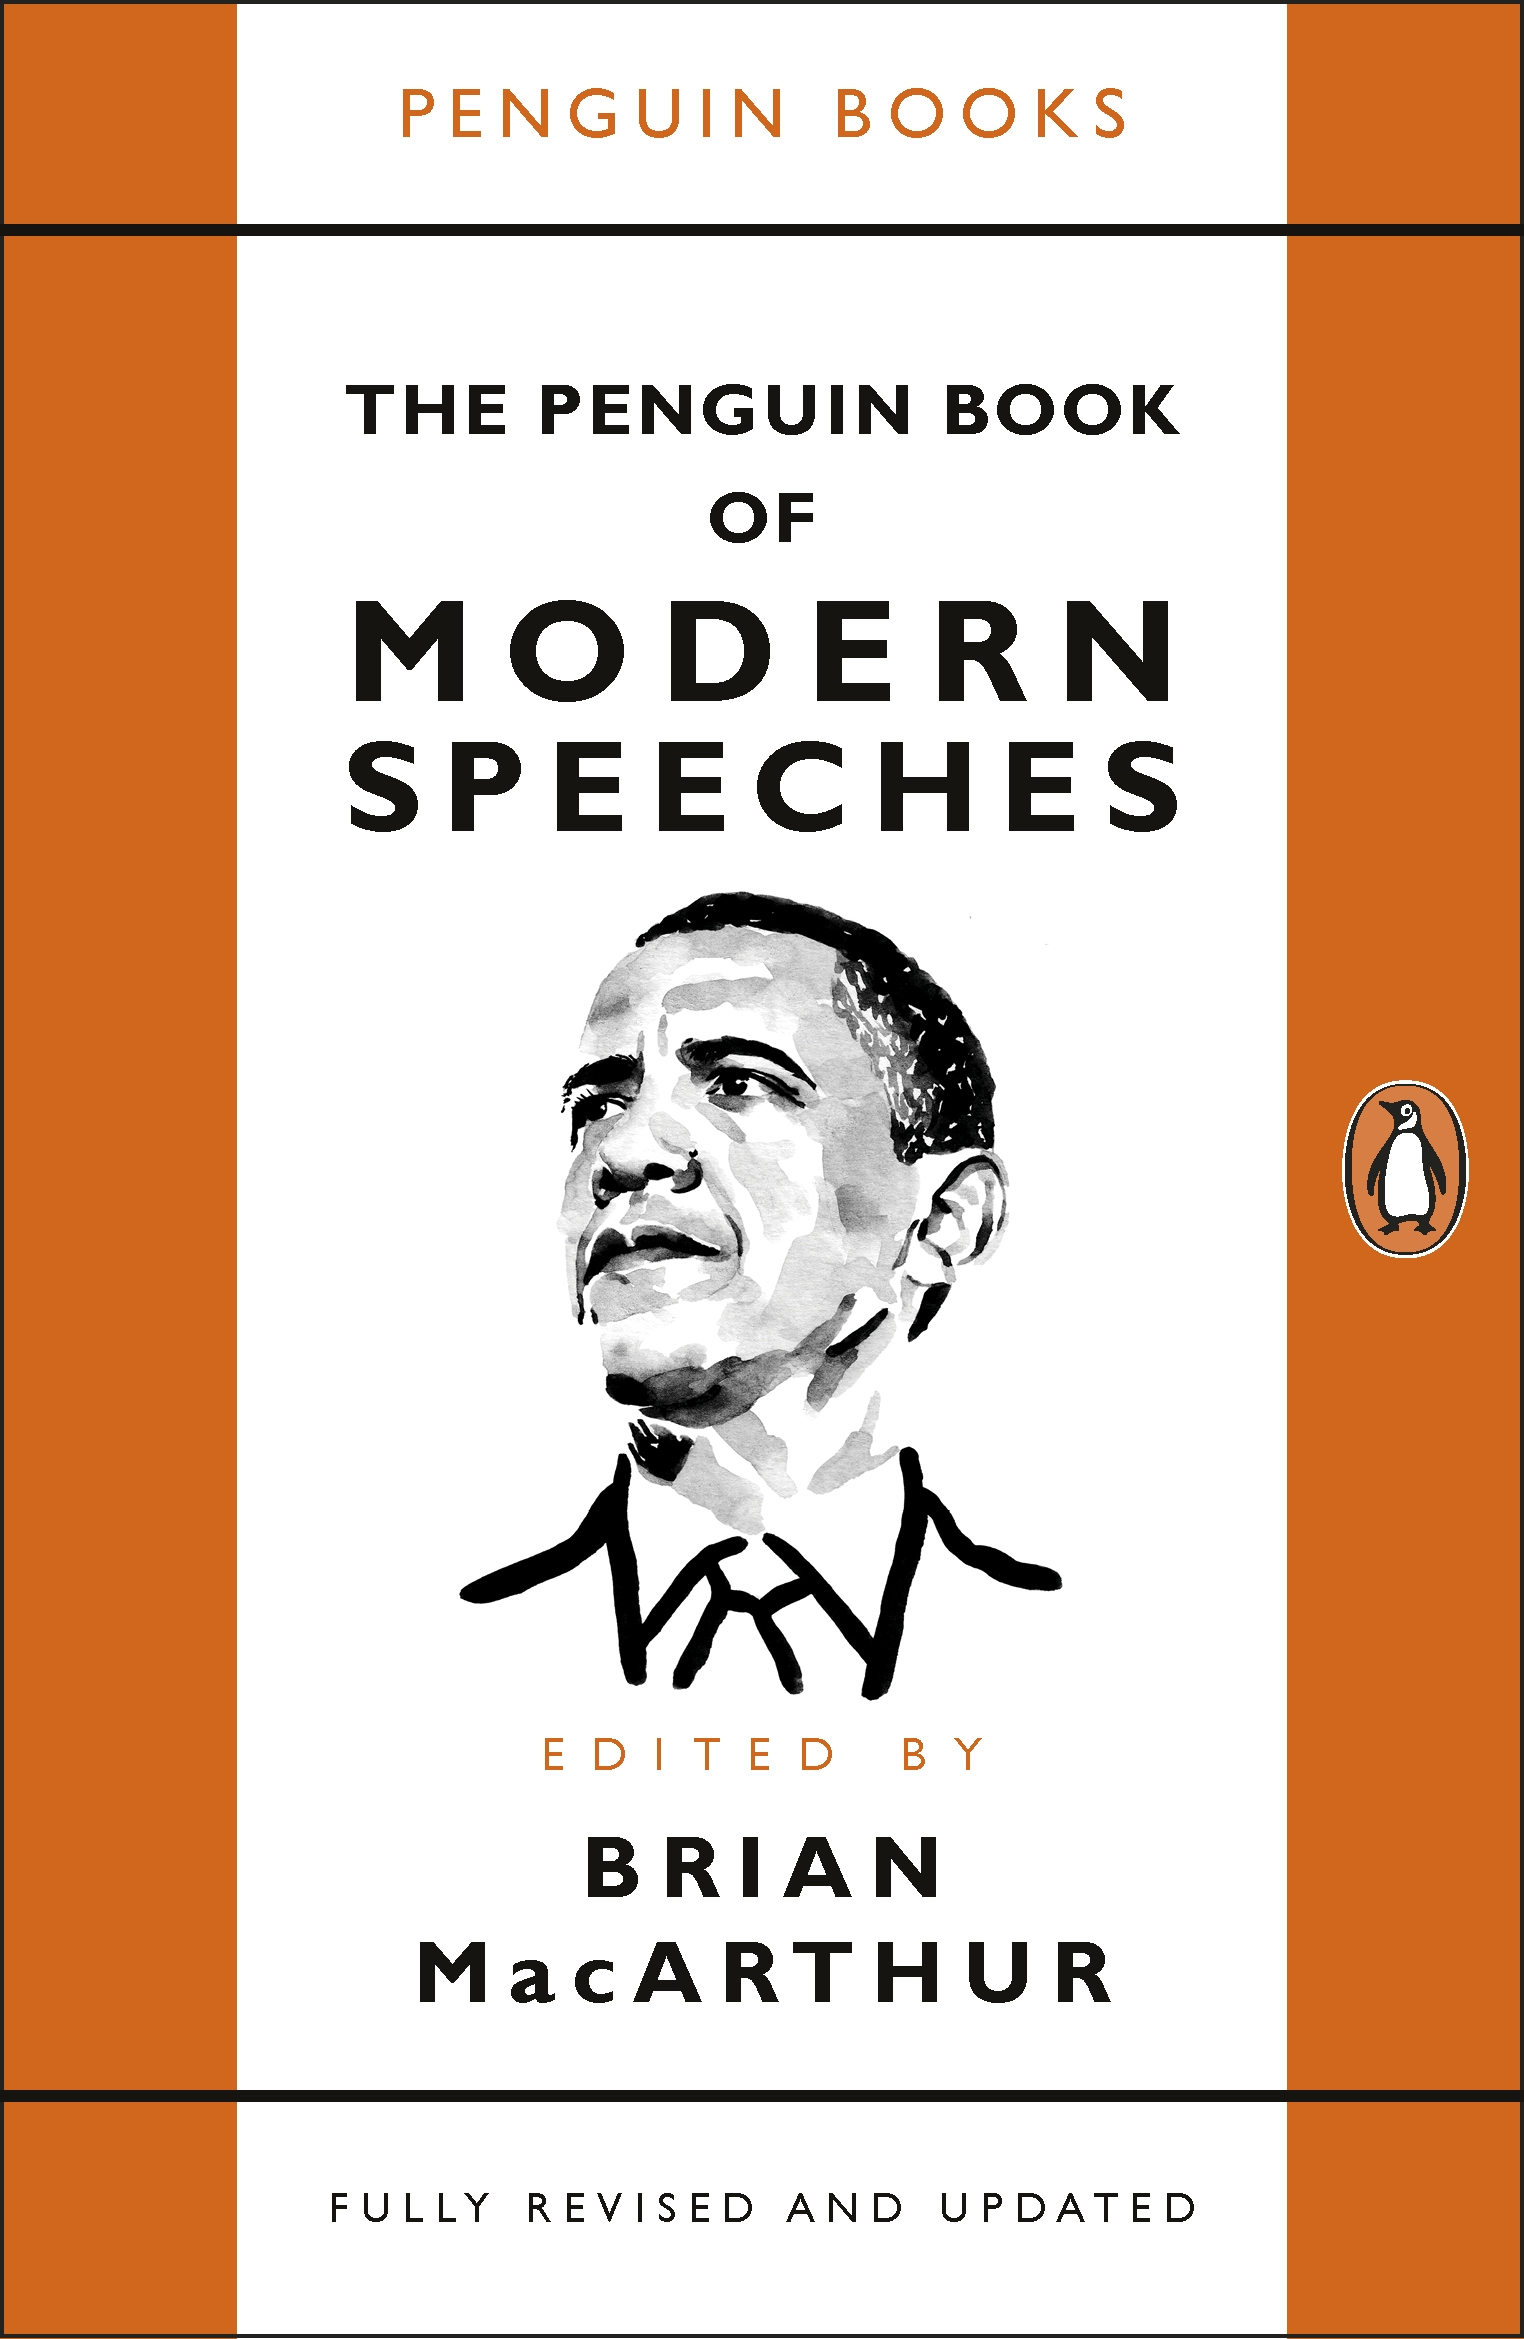 The Penguin Book of Modern Speeches - Edited by Brian MacArthur